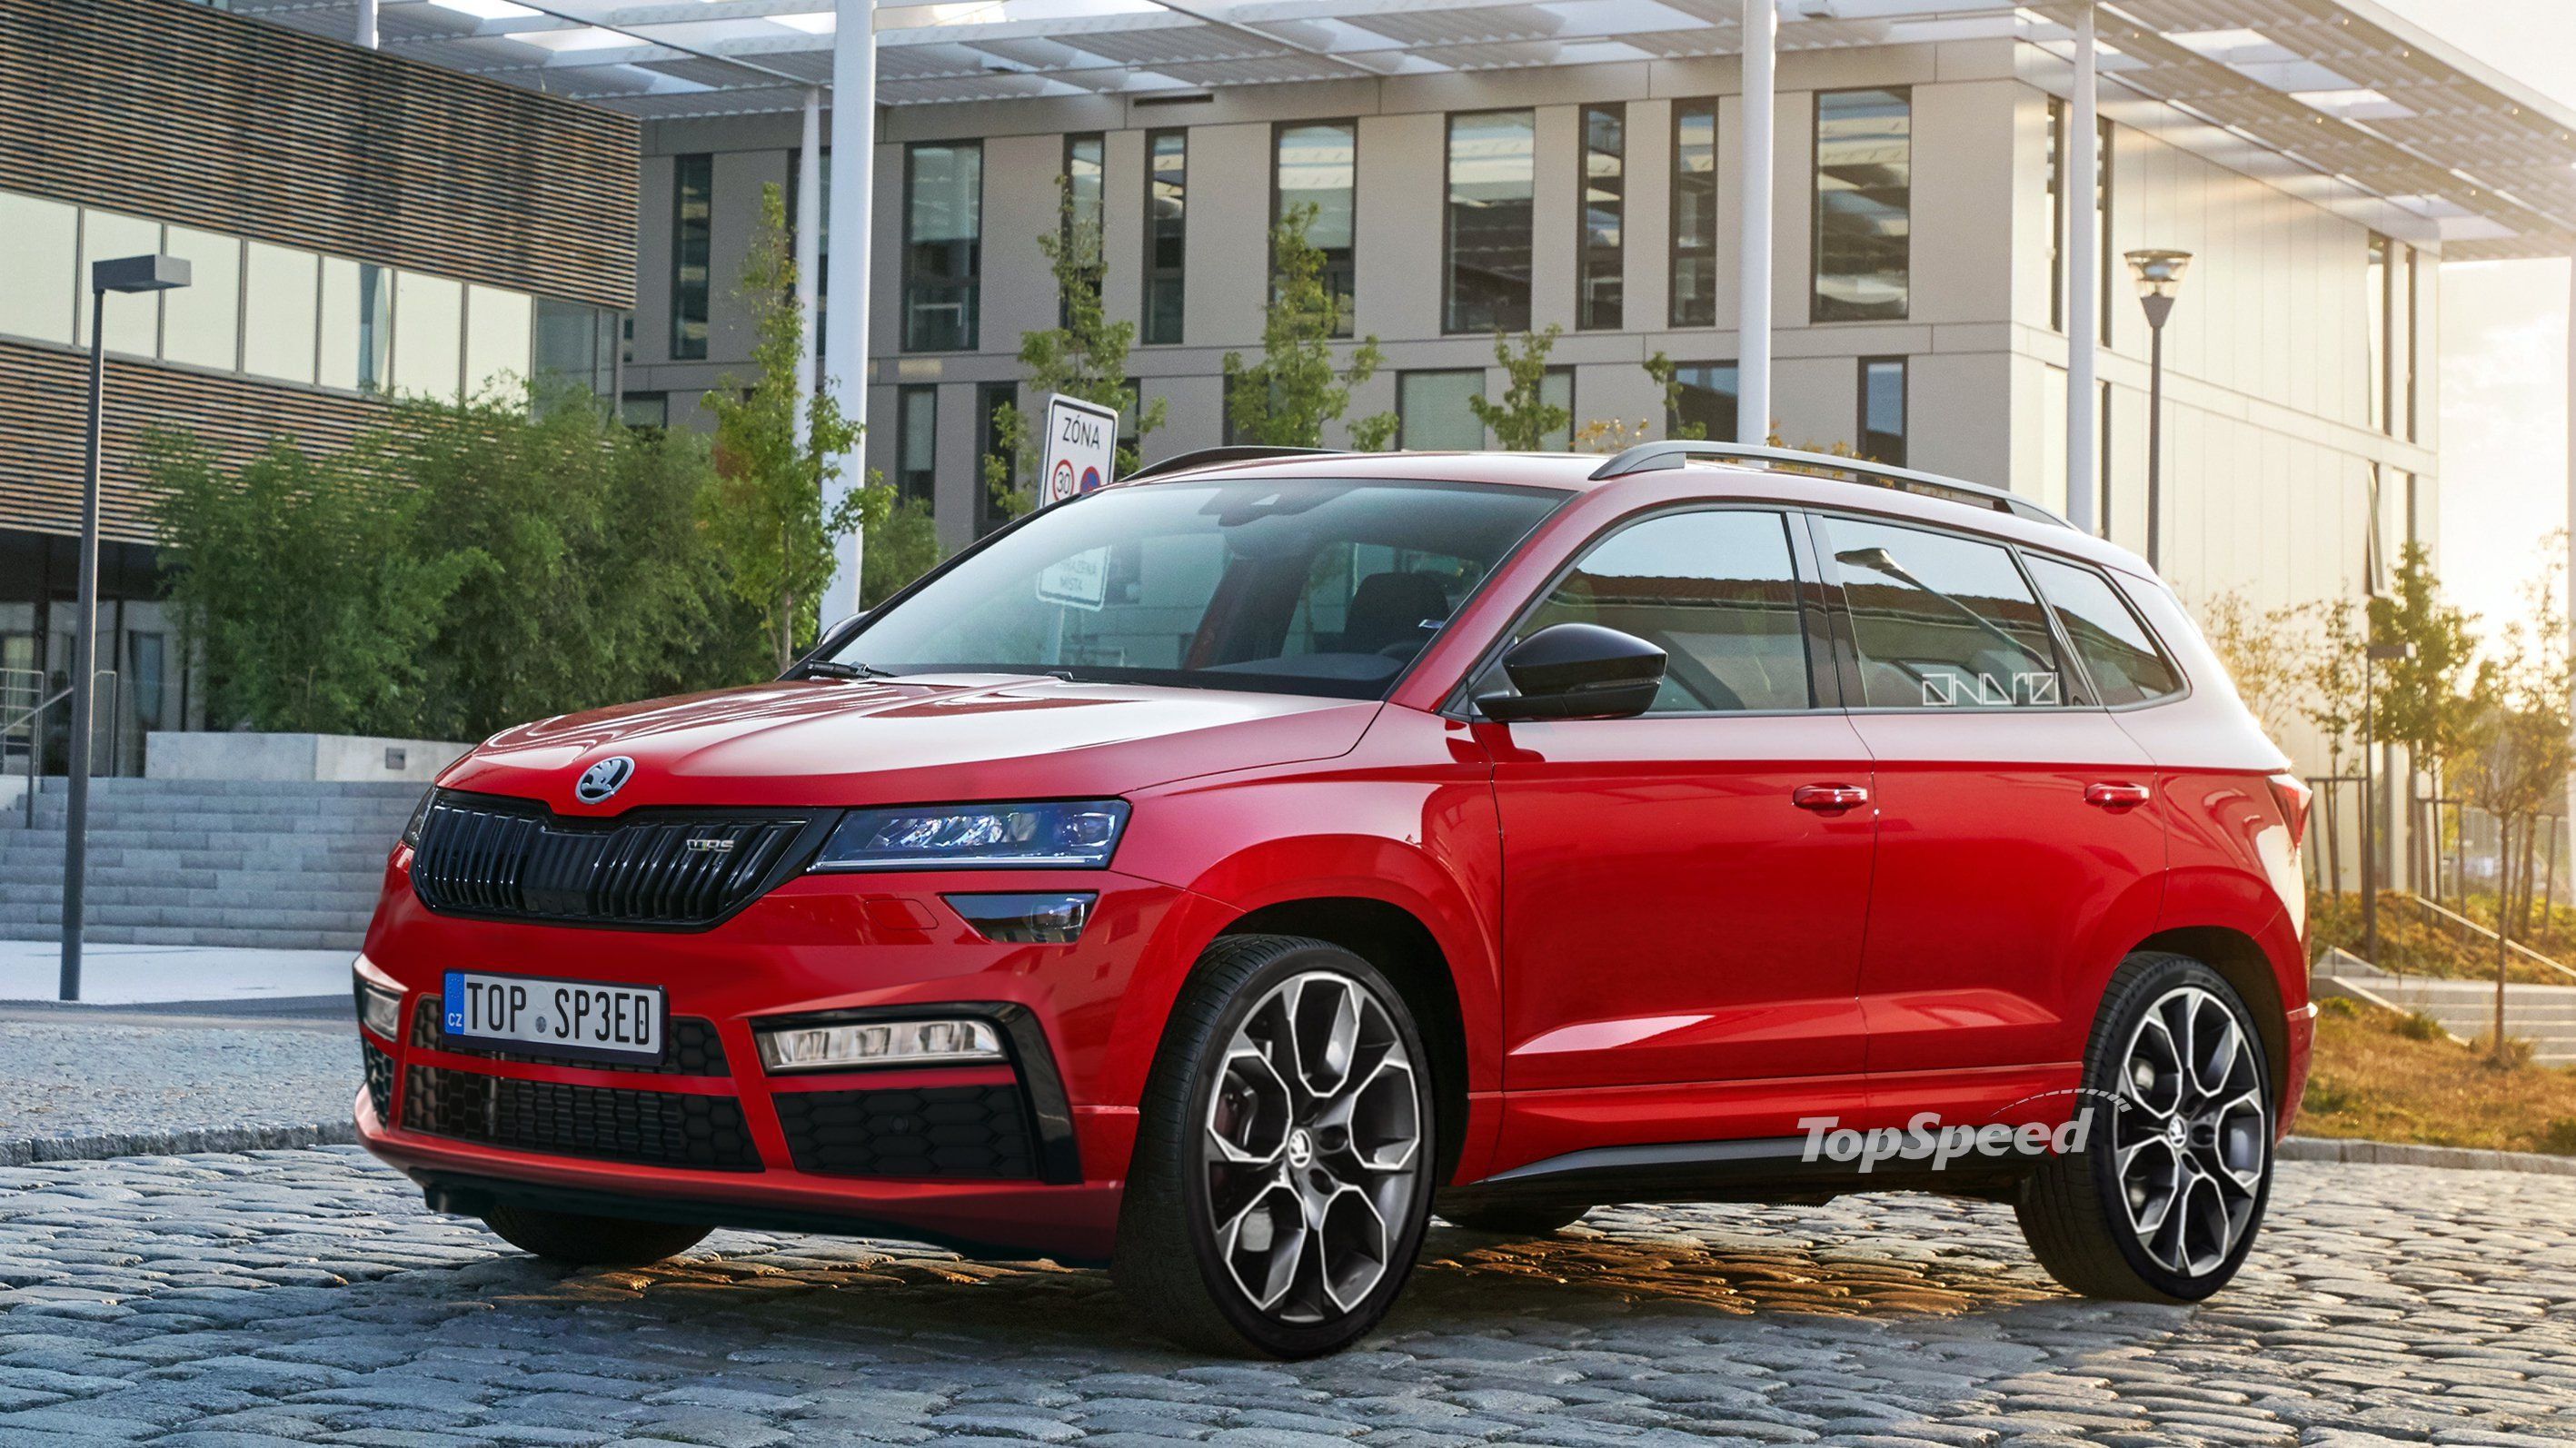 2020 Skoda Karoq Rs Volkswagen City Car Life Car